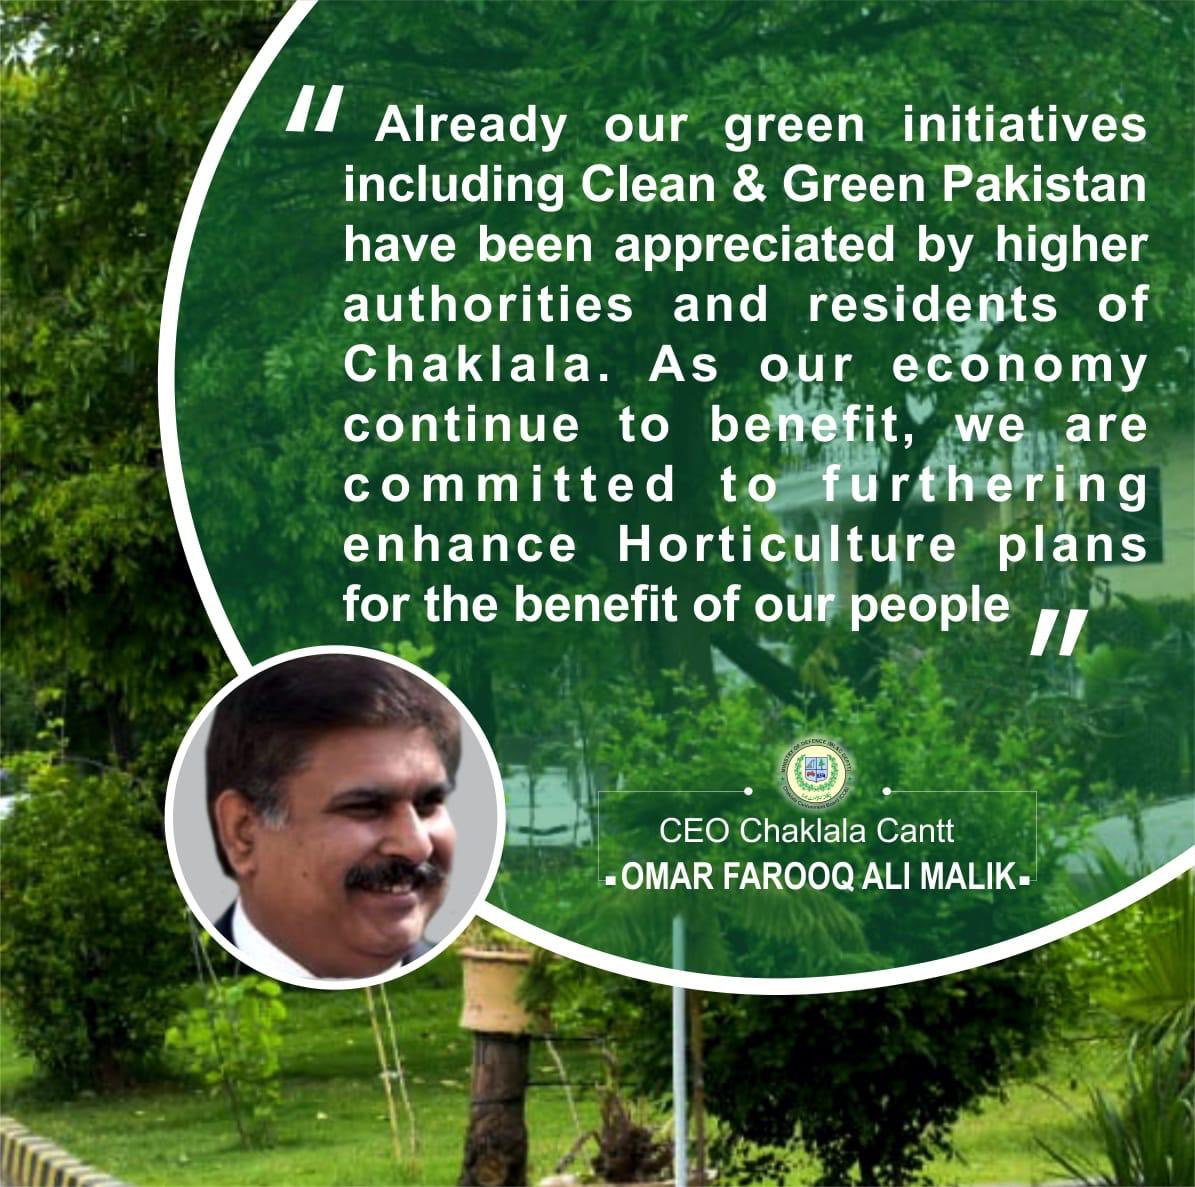 :: CEO Chaklala Message ::  For suggestions, please email us at cb.chaklala@gmail.com   #CBCARE #CCB #Chaklala #Rawalpindi #Rawalpindians #Horticulture #CleanandGreenPakistan #Greencitypic.twitter.com/EoNQIfKdas